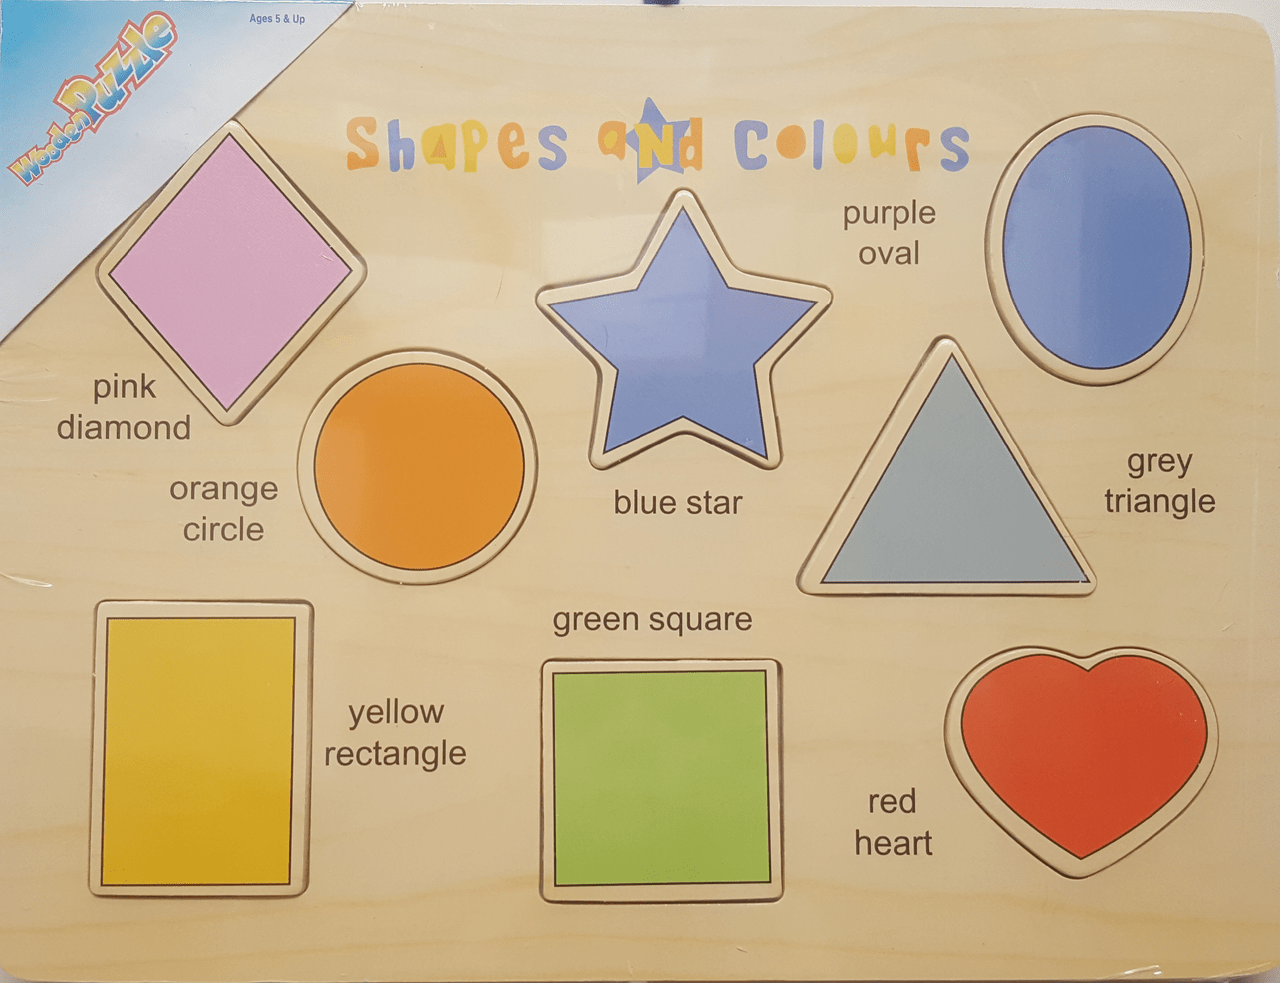 shapes and colours wooden puzzle [ 1280 x 983 Pixel ]